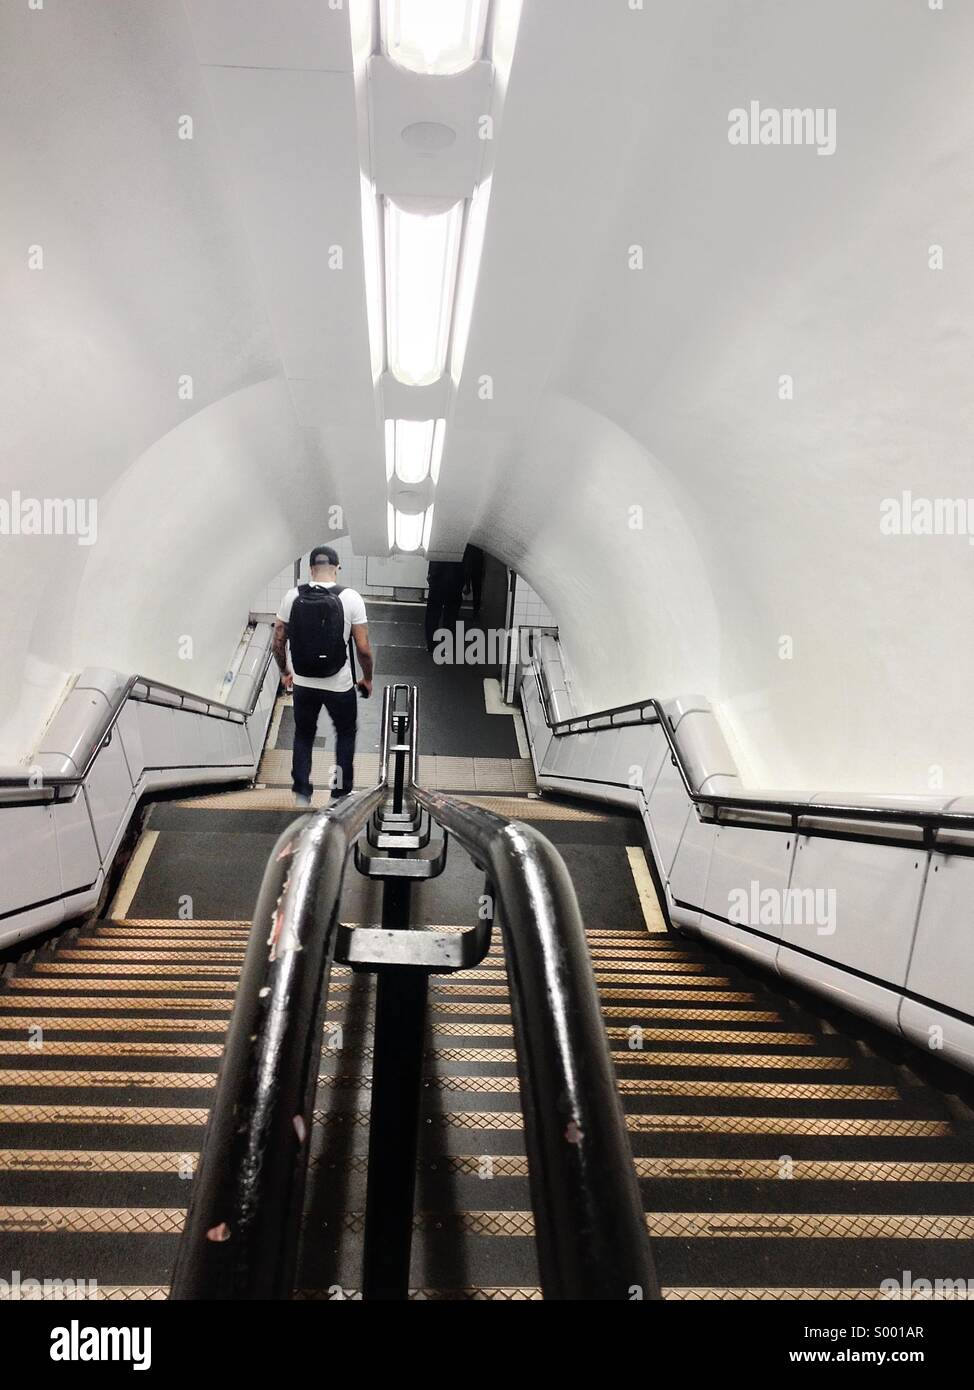 Man going down the stairs. London Underground. - Stock Image